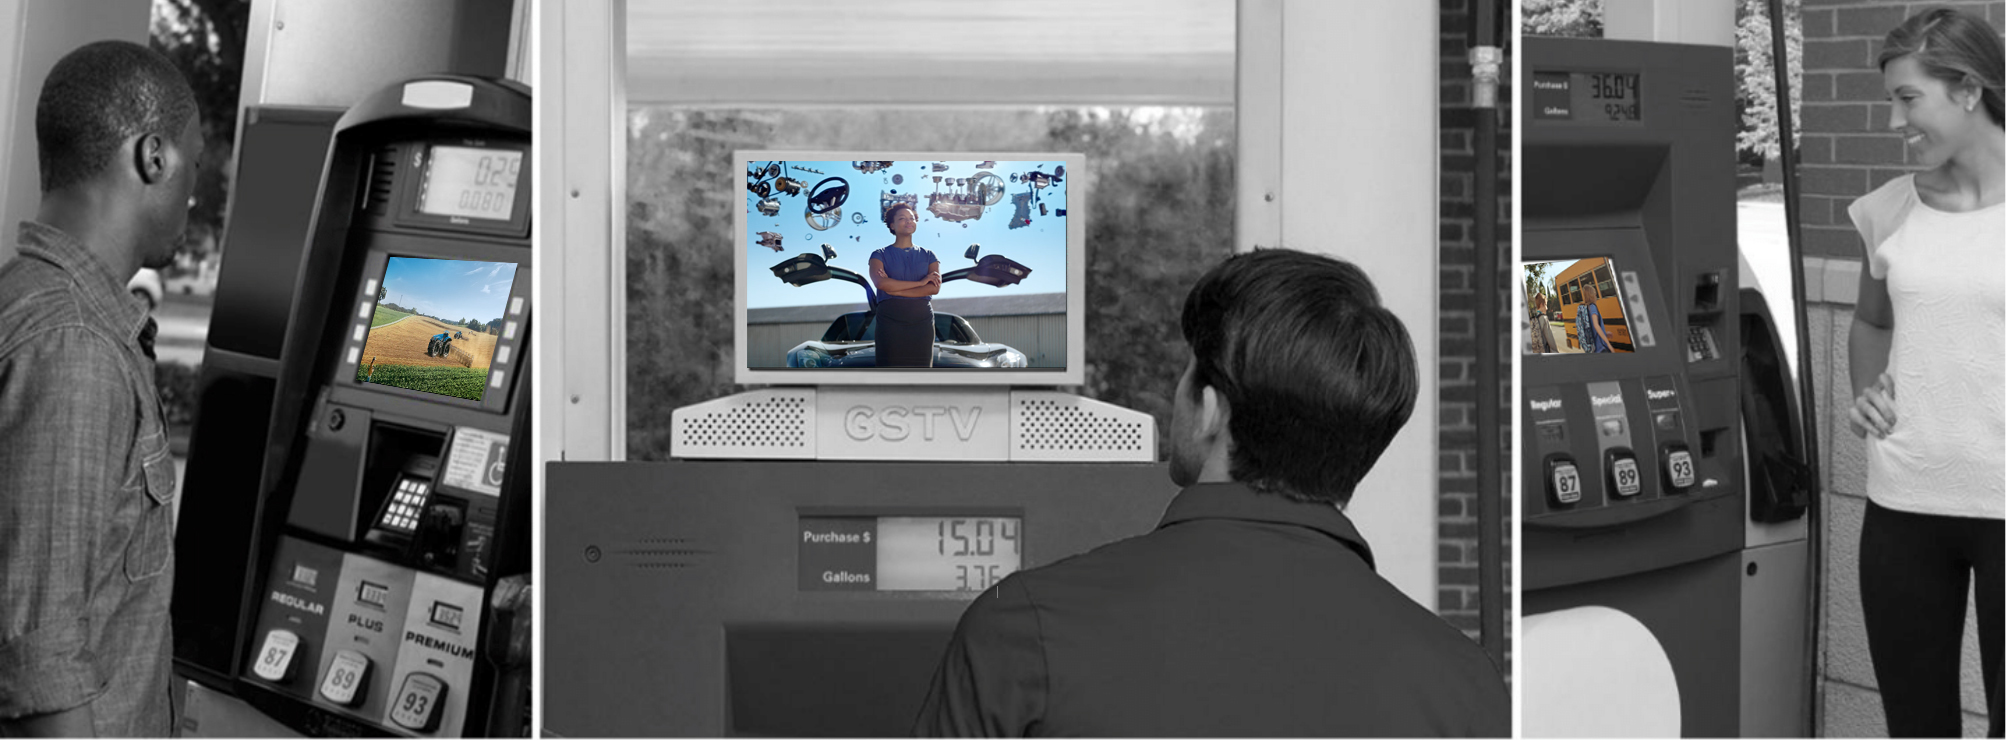 Experiential: POS Video